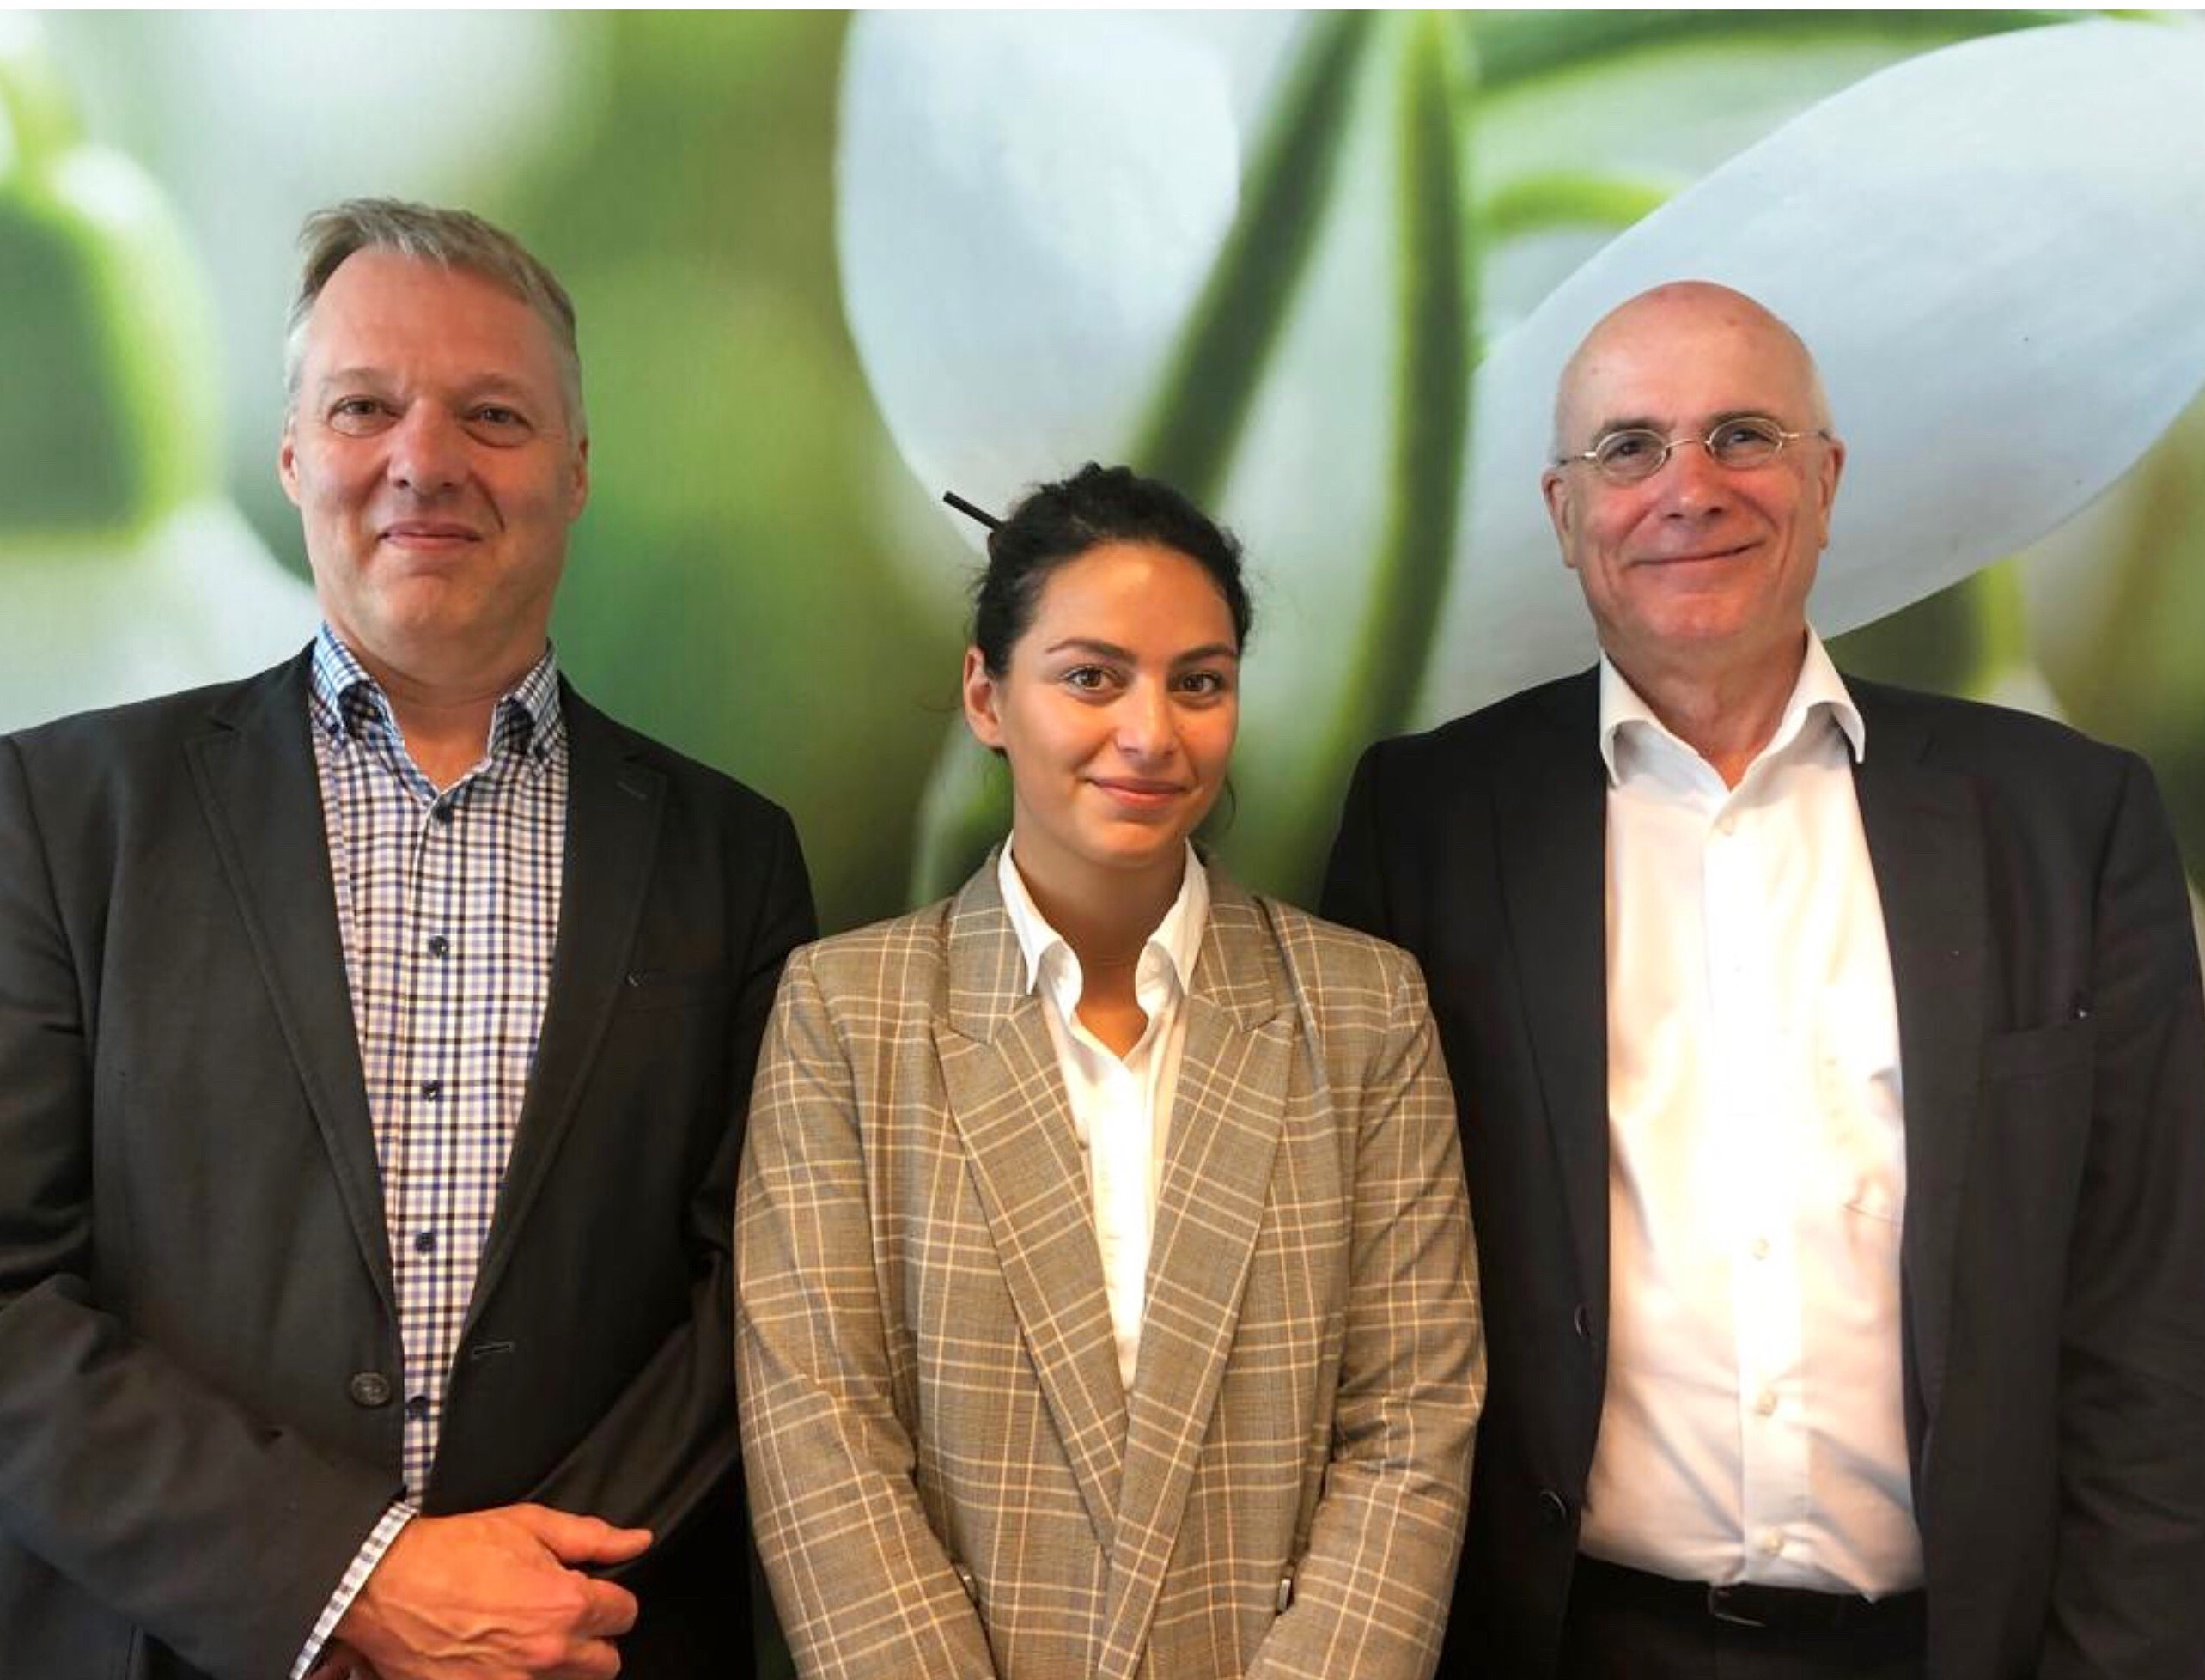 Dr Gvantsa Kvantaliani from Georgia visits Rett Expertise Centre of Maastricht